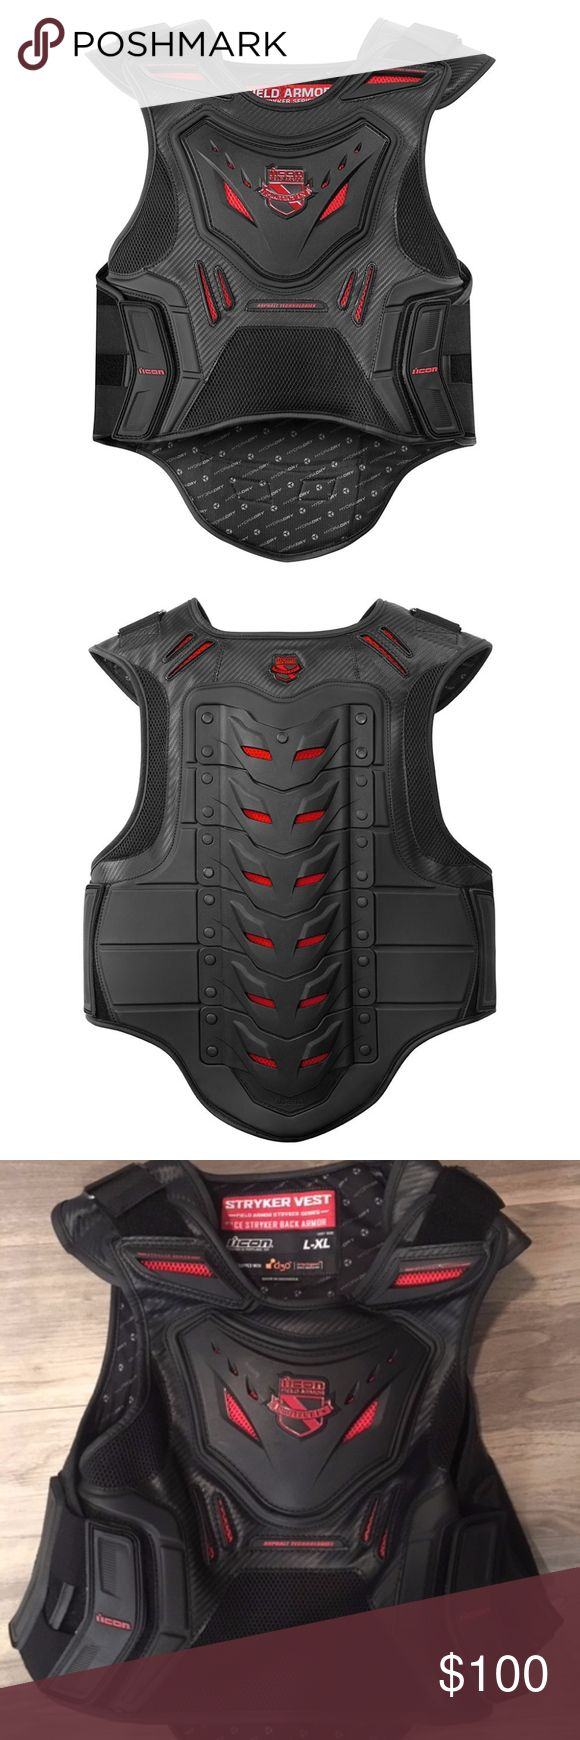 ICON Stryker motorcycle vest Motorcycle vest, How to